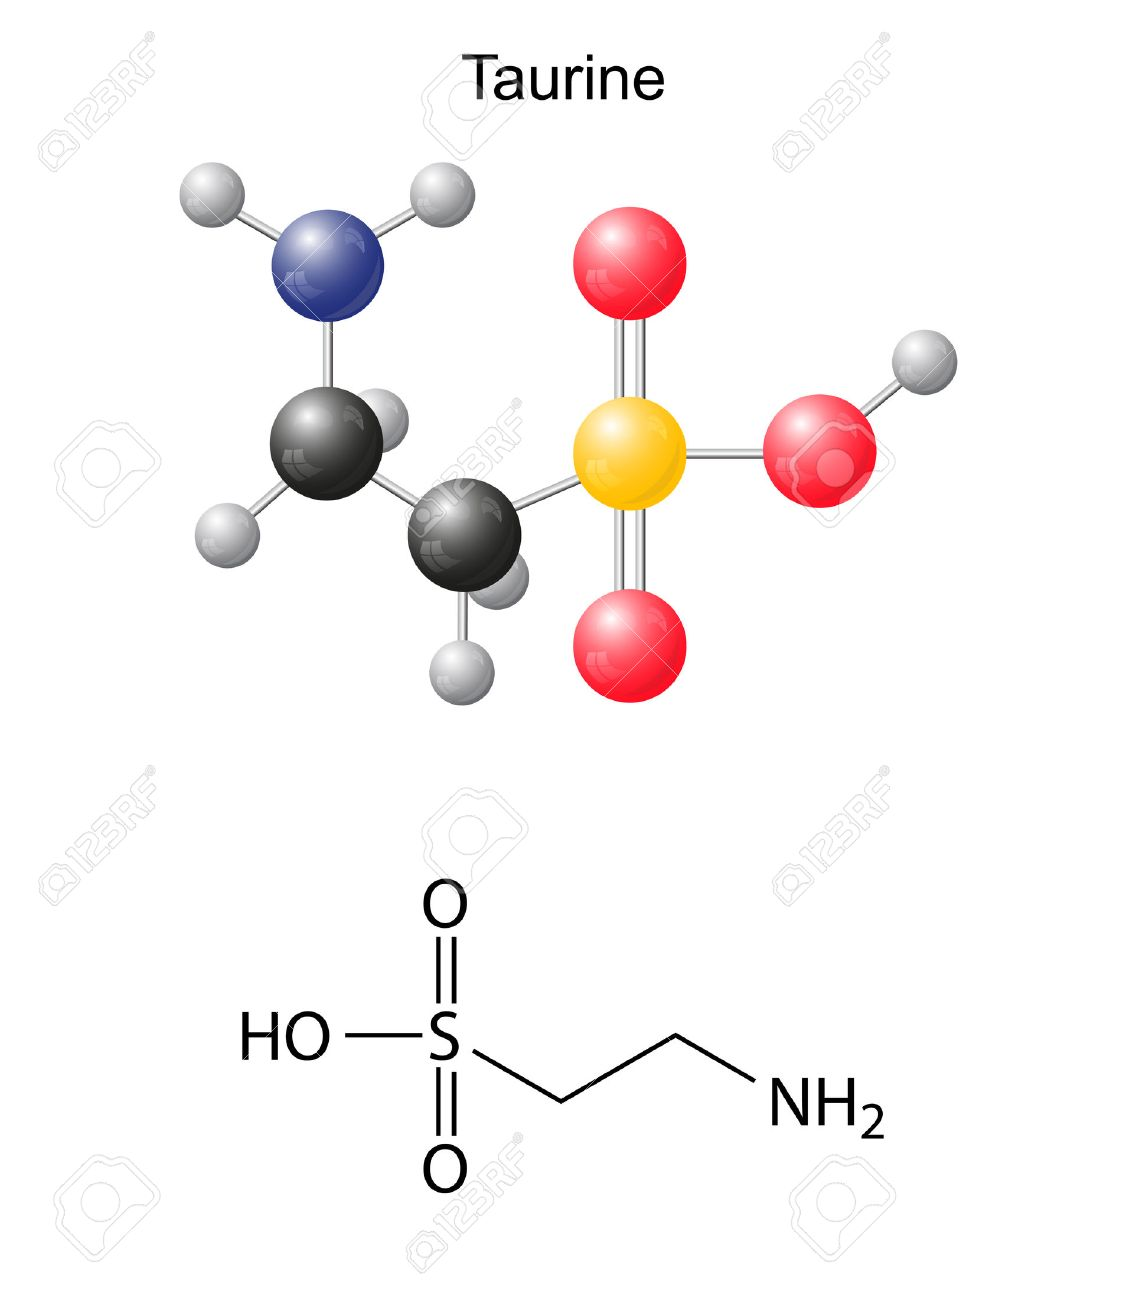 Taurine tau - chemical structural formula and models, amino acid, in vacuo, zwitterion, 2D and 3D illustration, balls and sticks, isolated on white background, vector, eps10 - 30656023